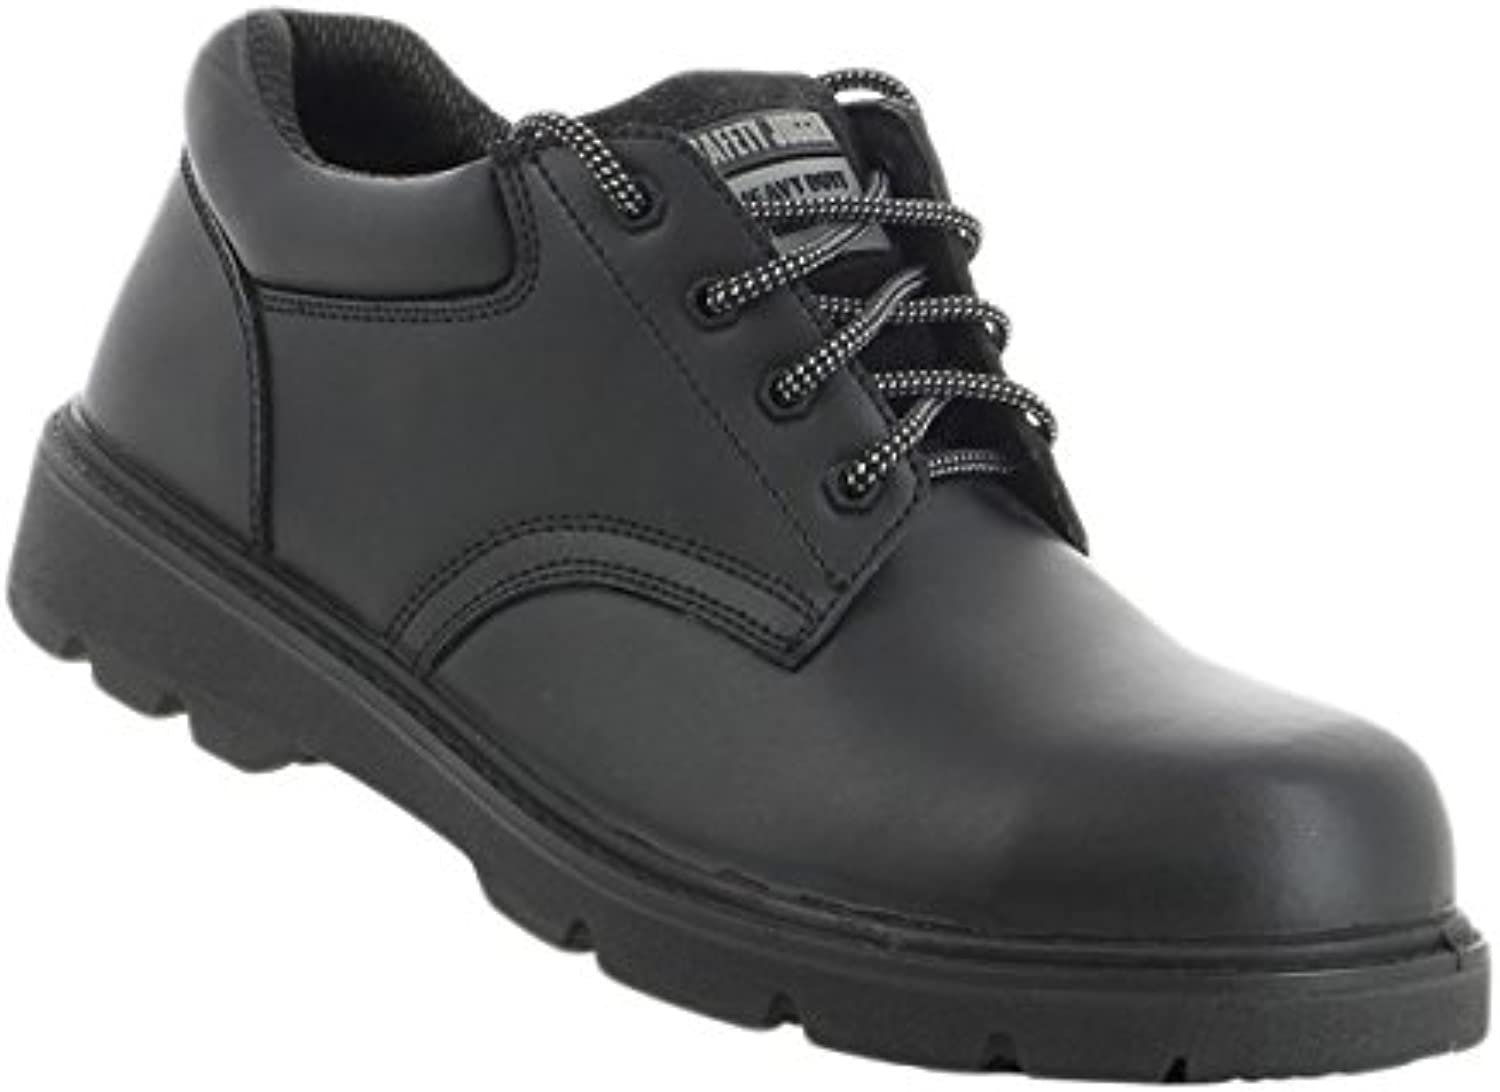 SAFETY JOGGER X1110 Men Safety Toe Lightweight EH PR Water Resistant shoes, M10.5, Black